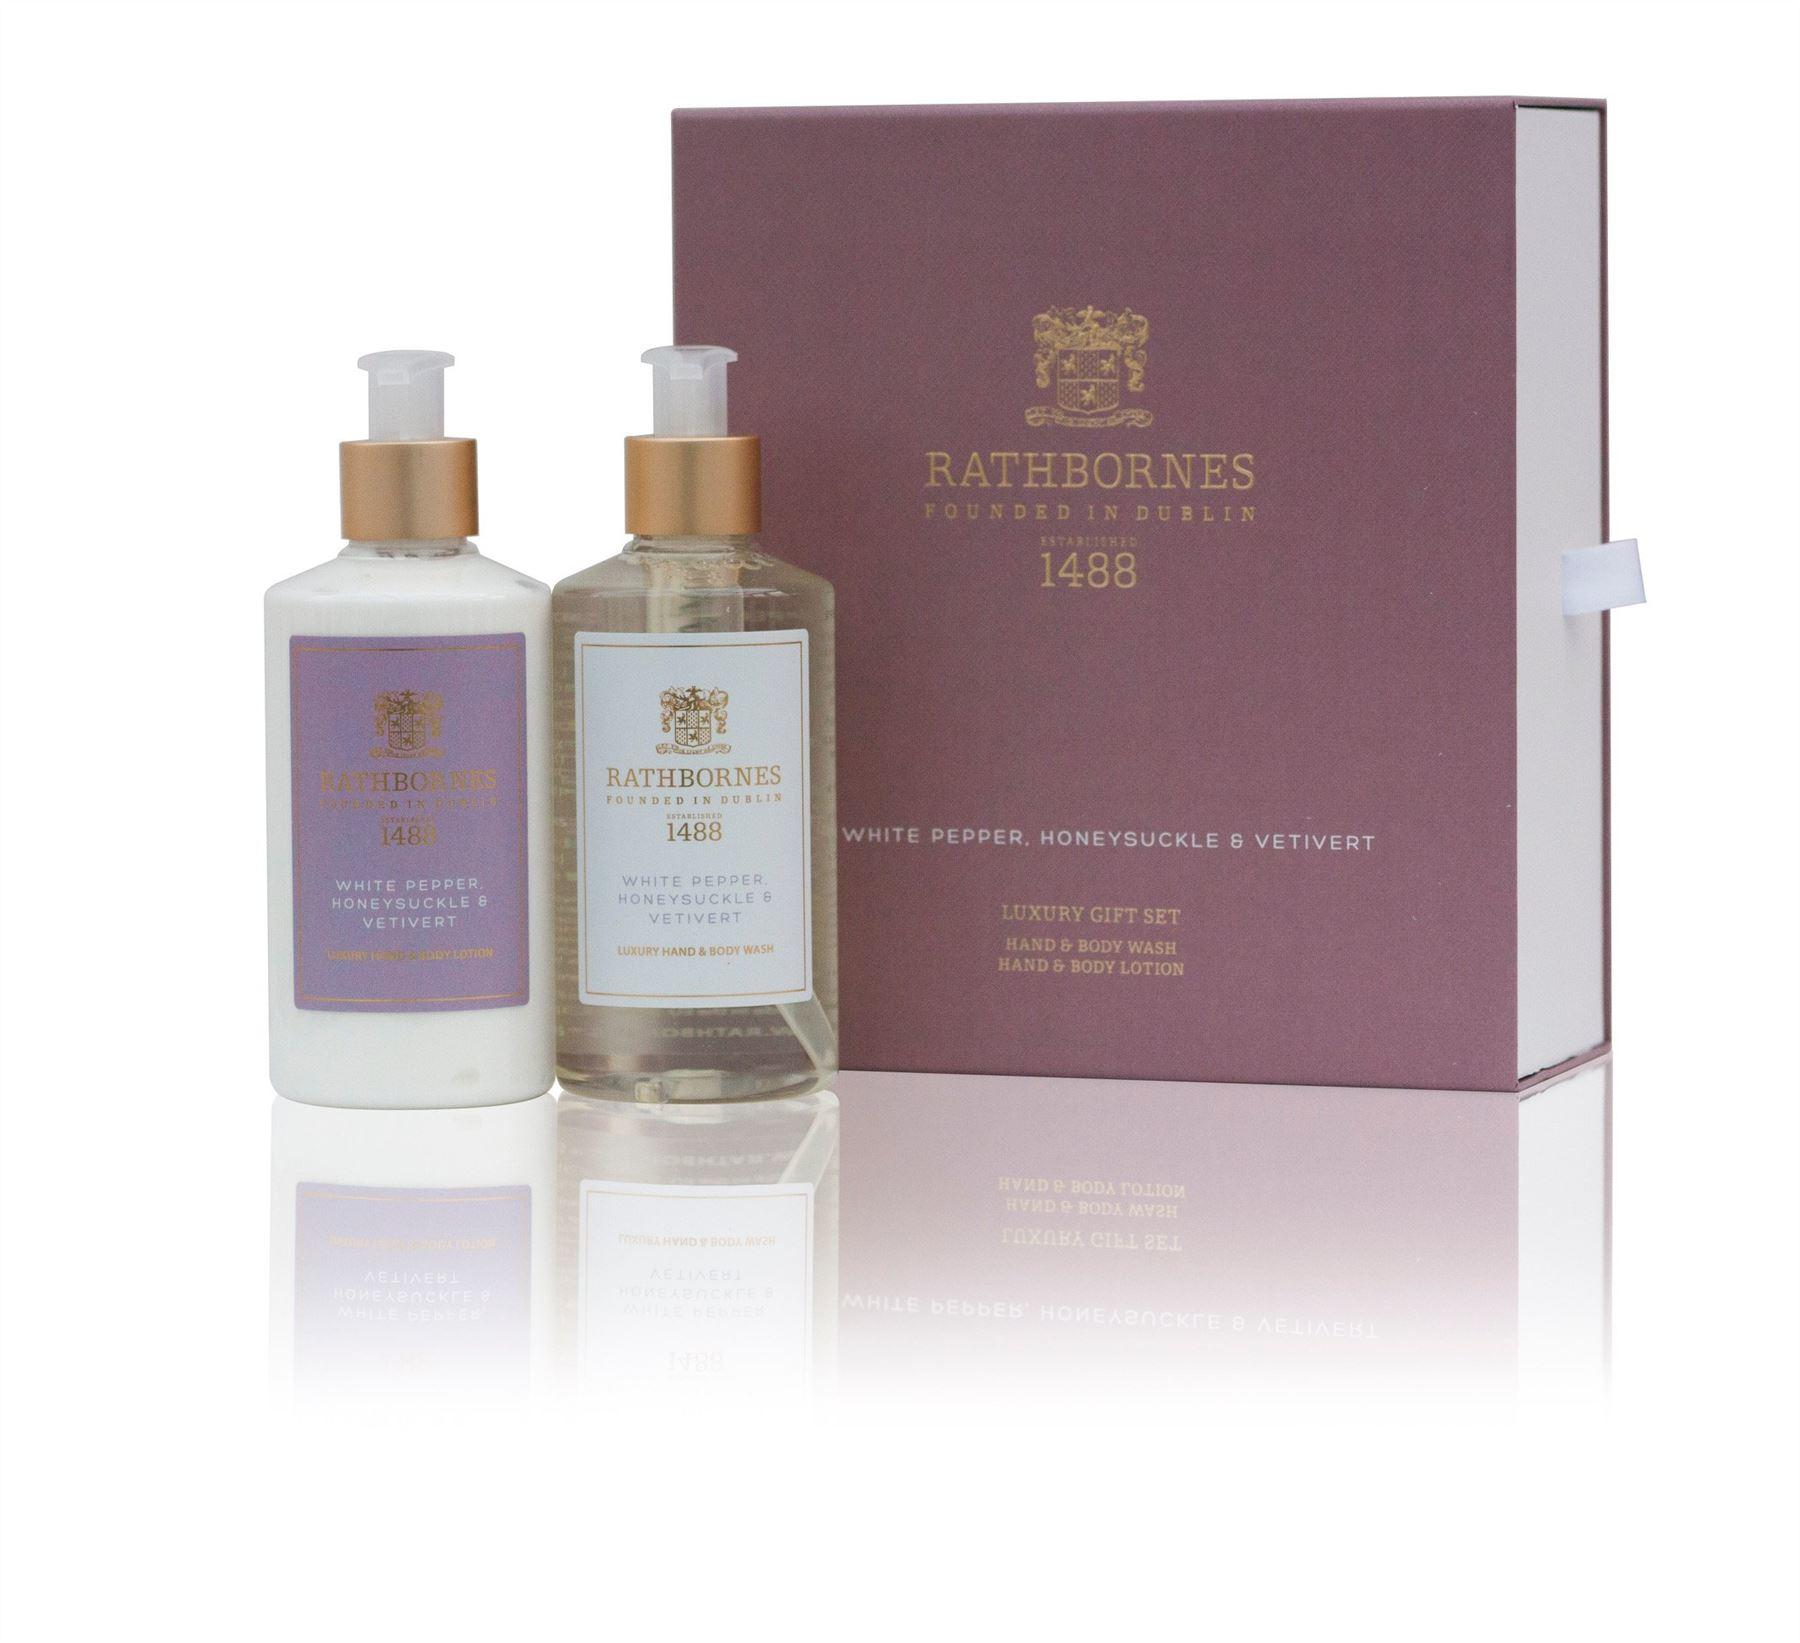 Rathbornes 1488 White Pepper Hand & Body Gift Set (Hand/Body Wash & Lotion)